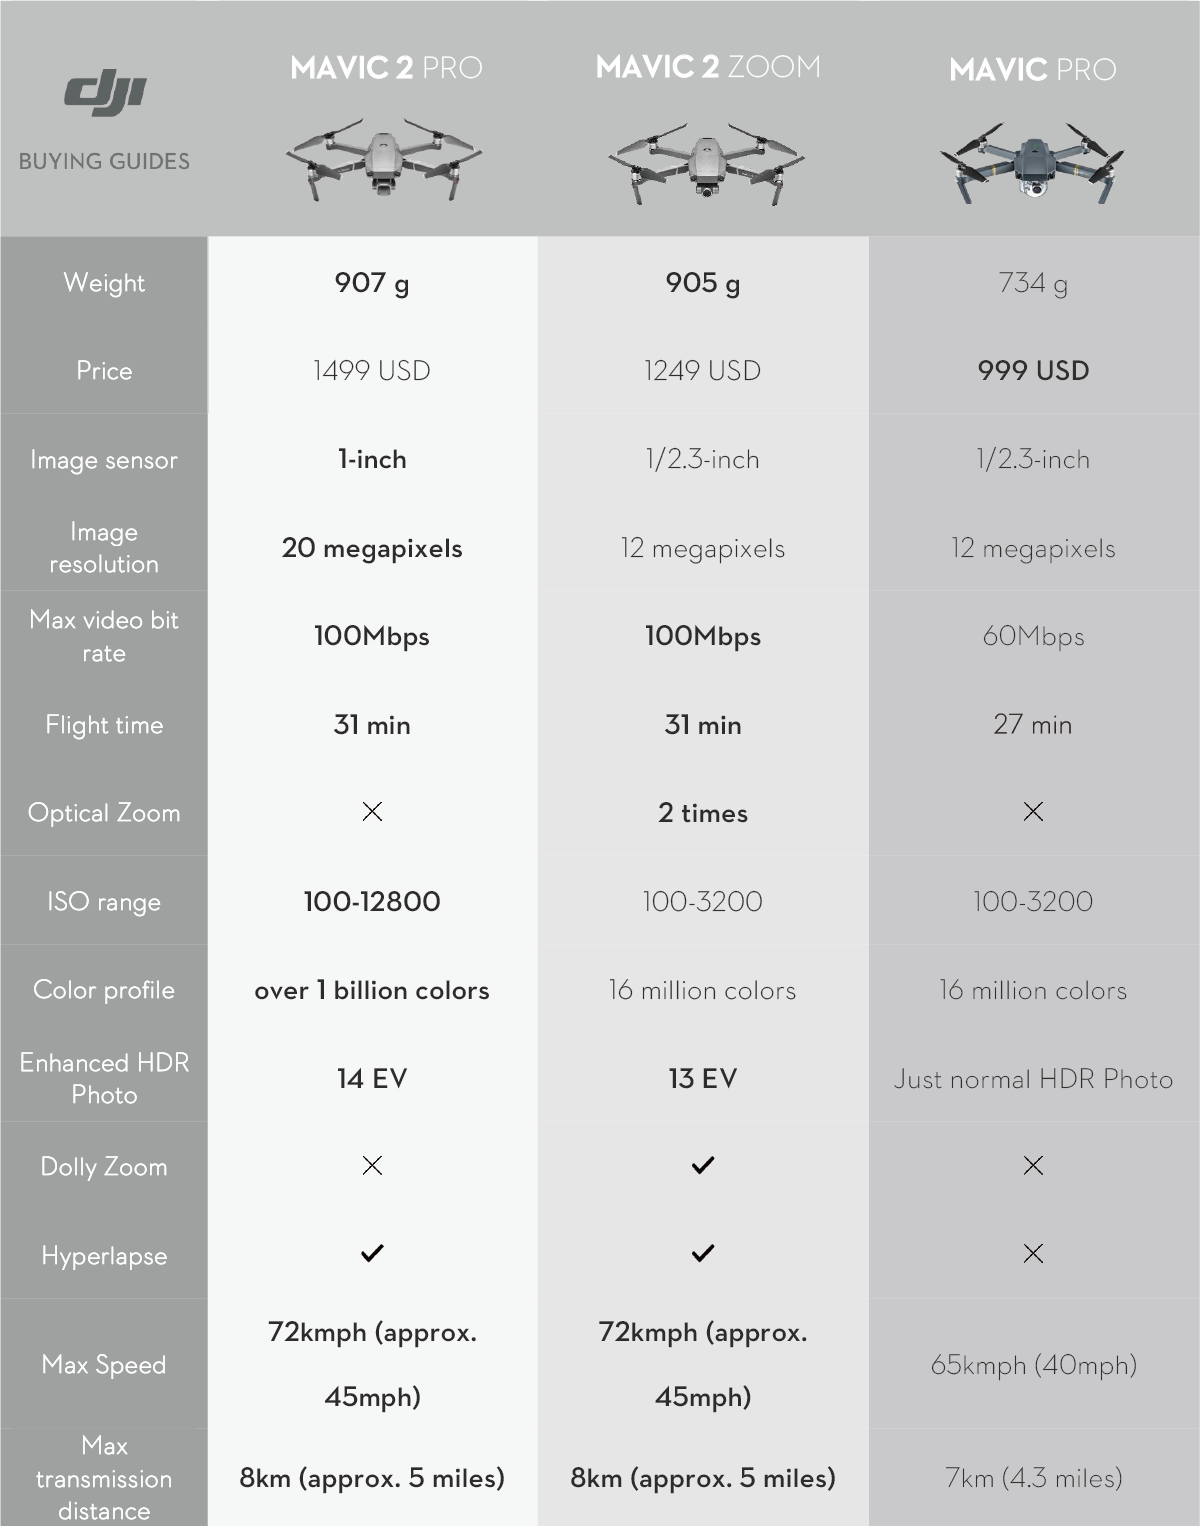 Mavic pro vs Zoom comparison table